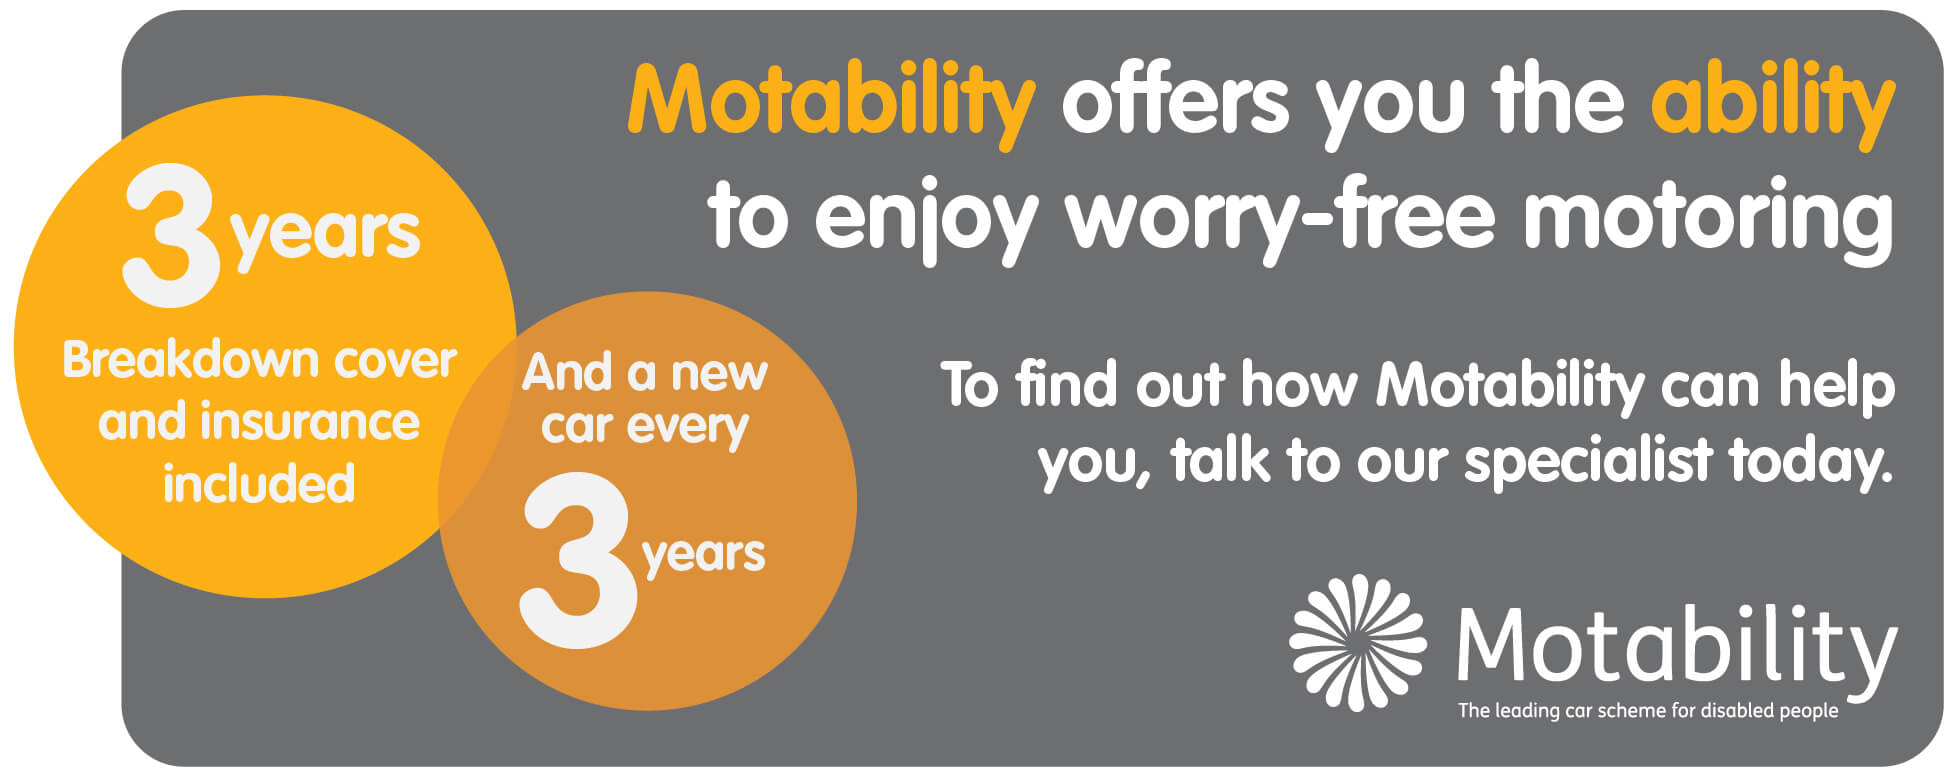 Motability Banner - 3 Years